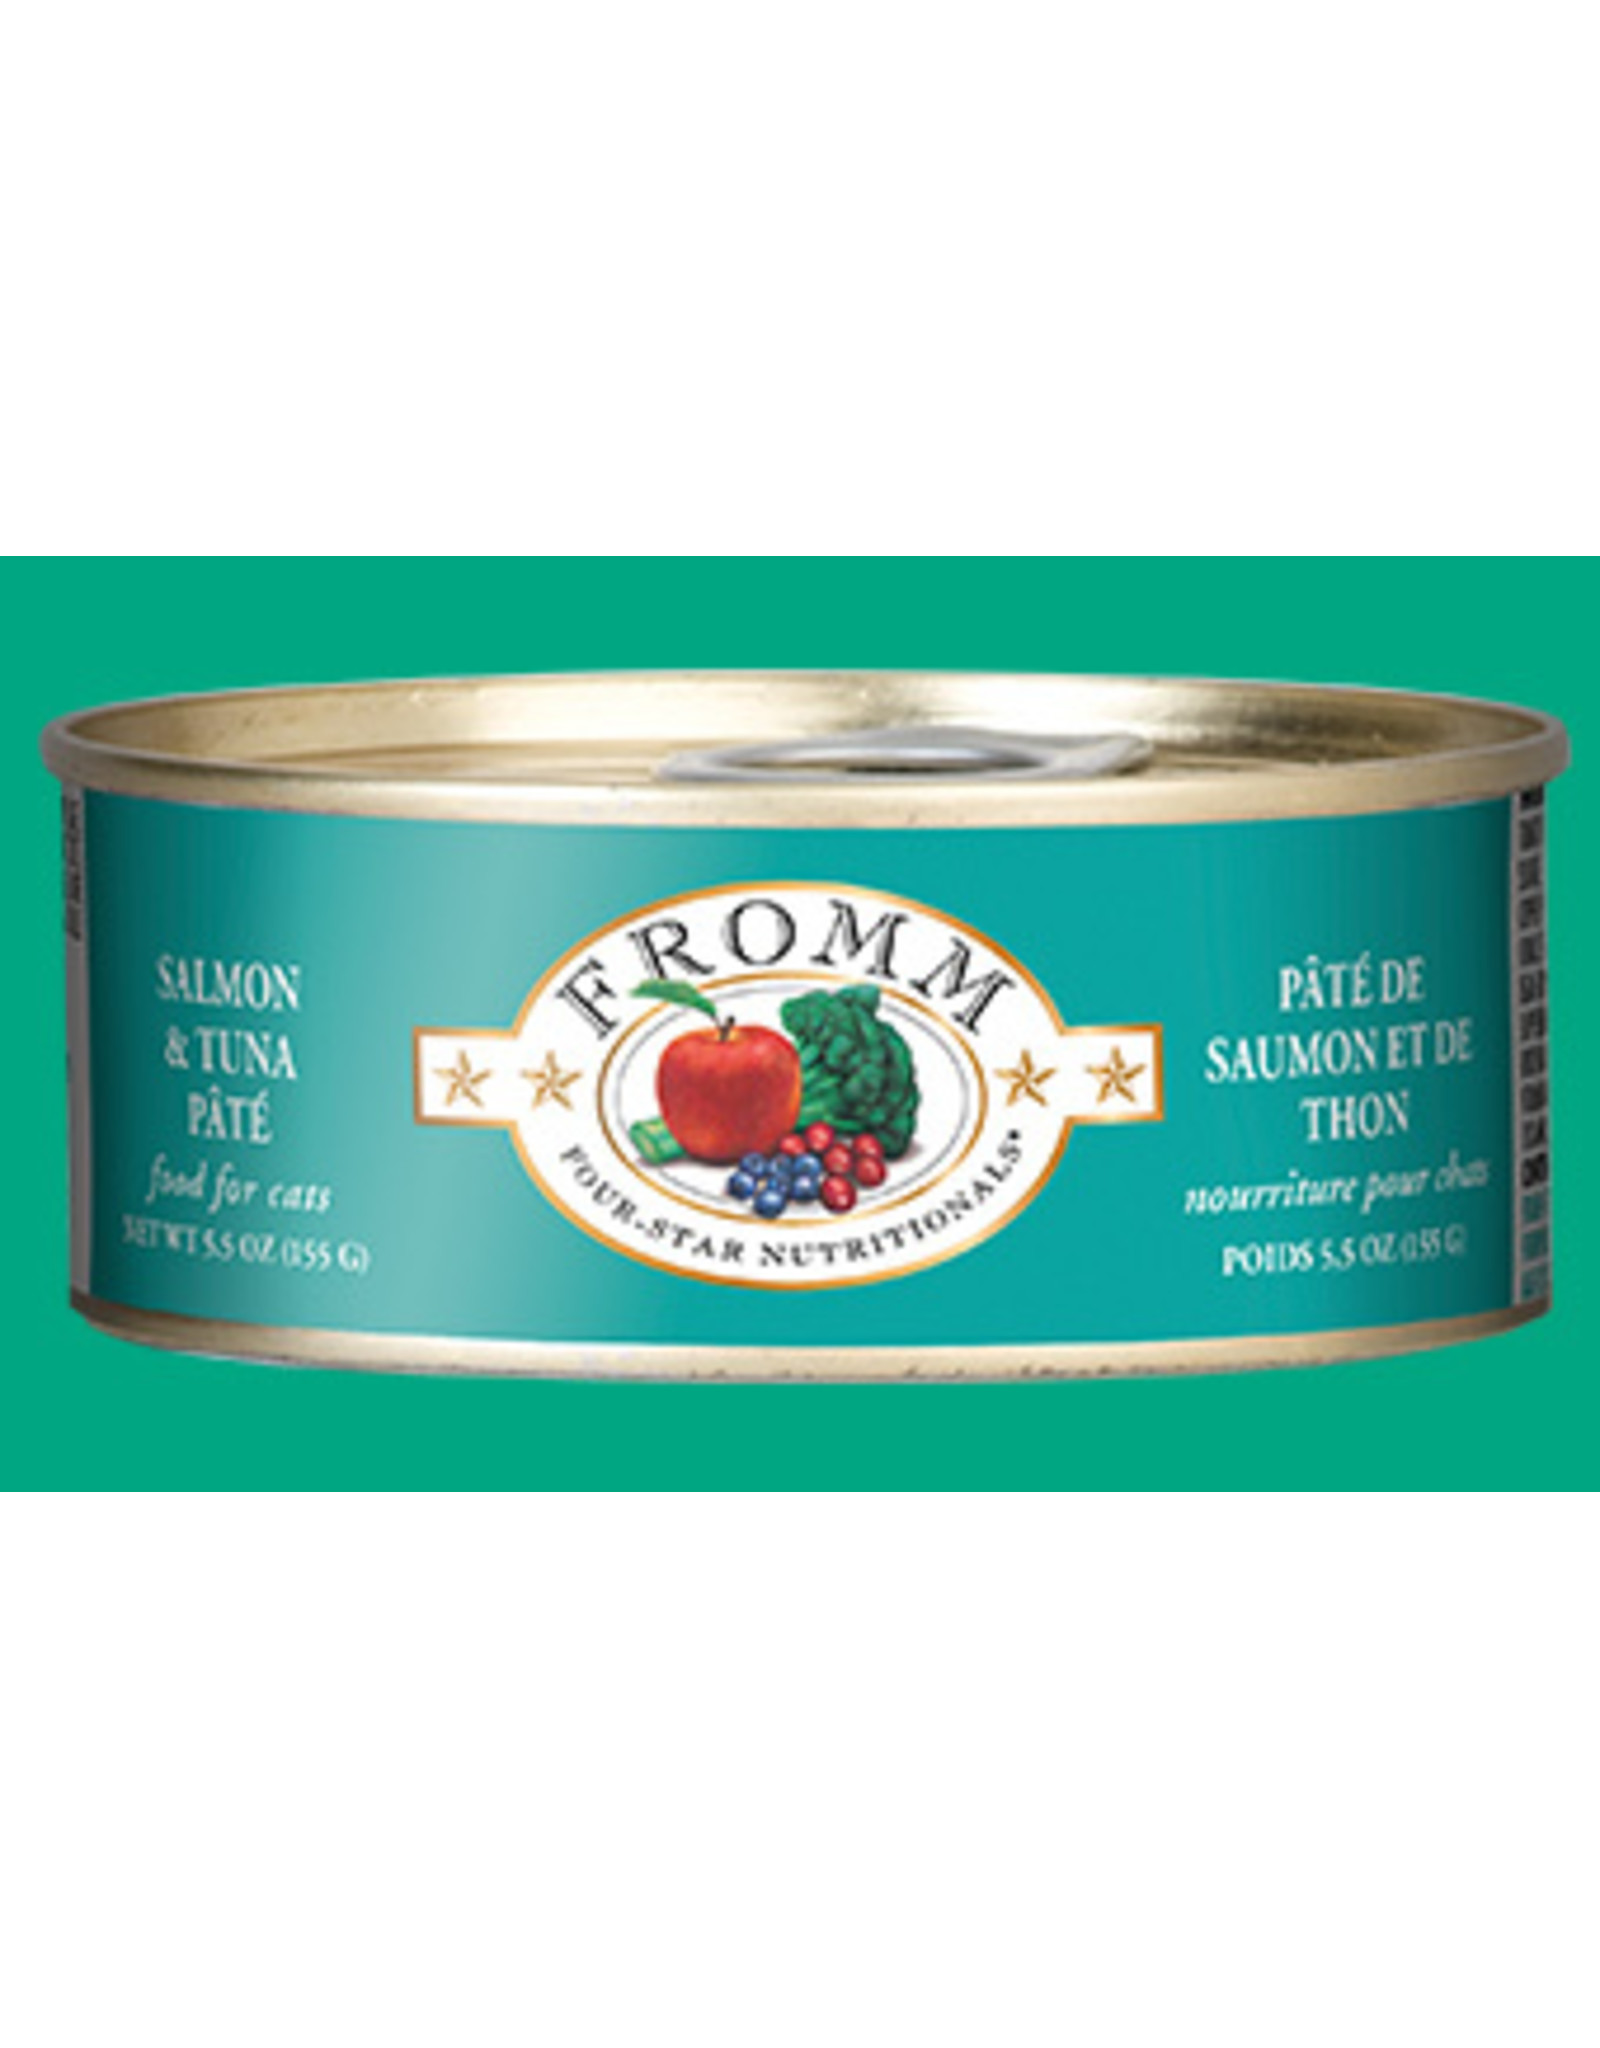 Fromm Fromm Cat Salmon & Tuna Pate 5oz